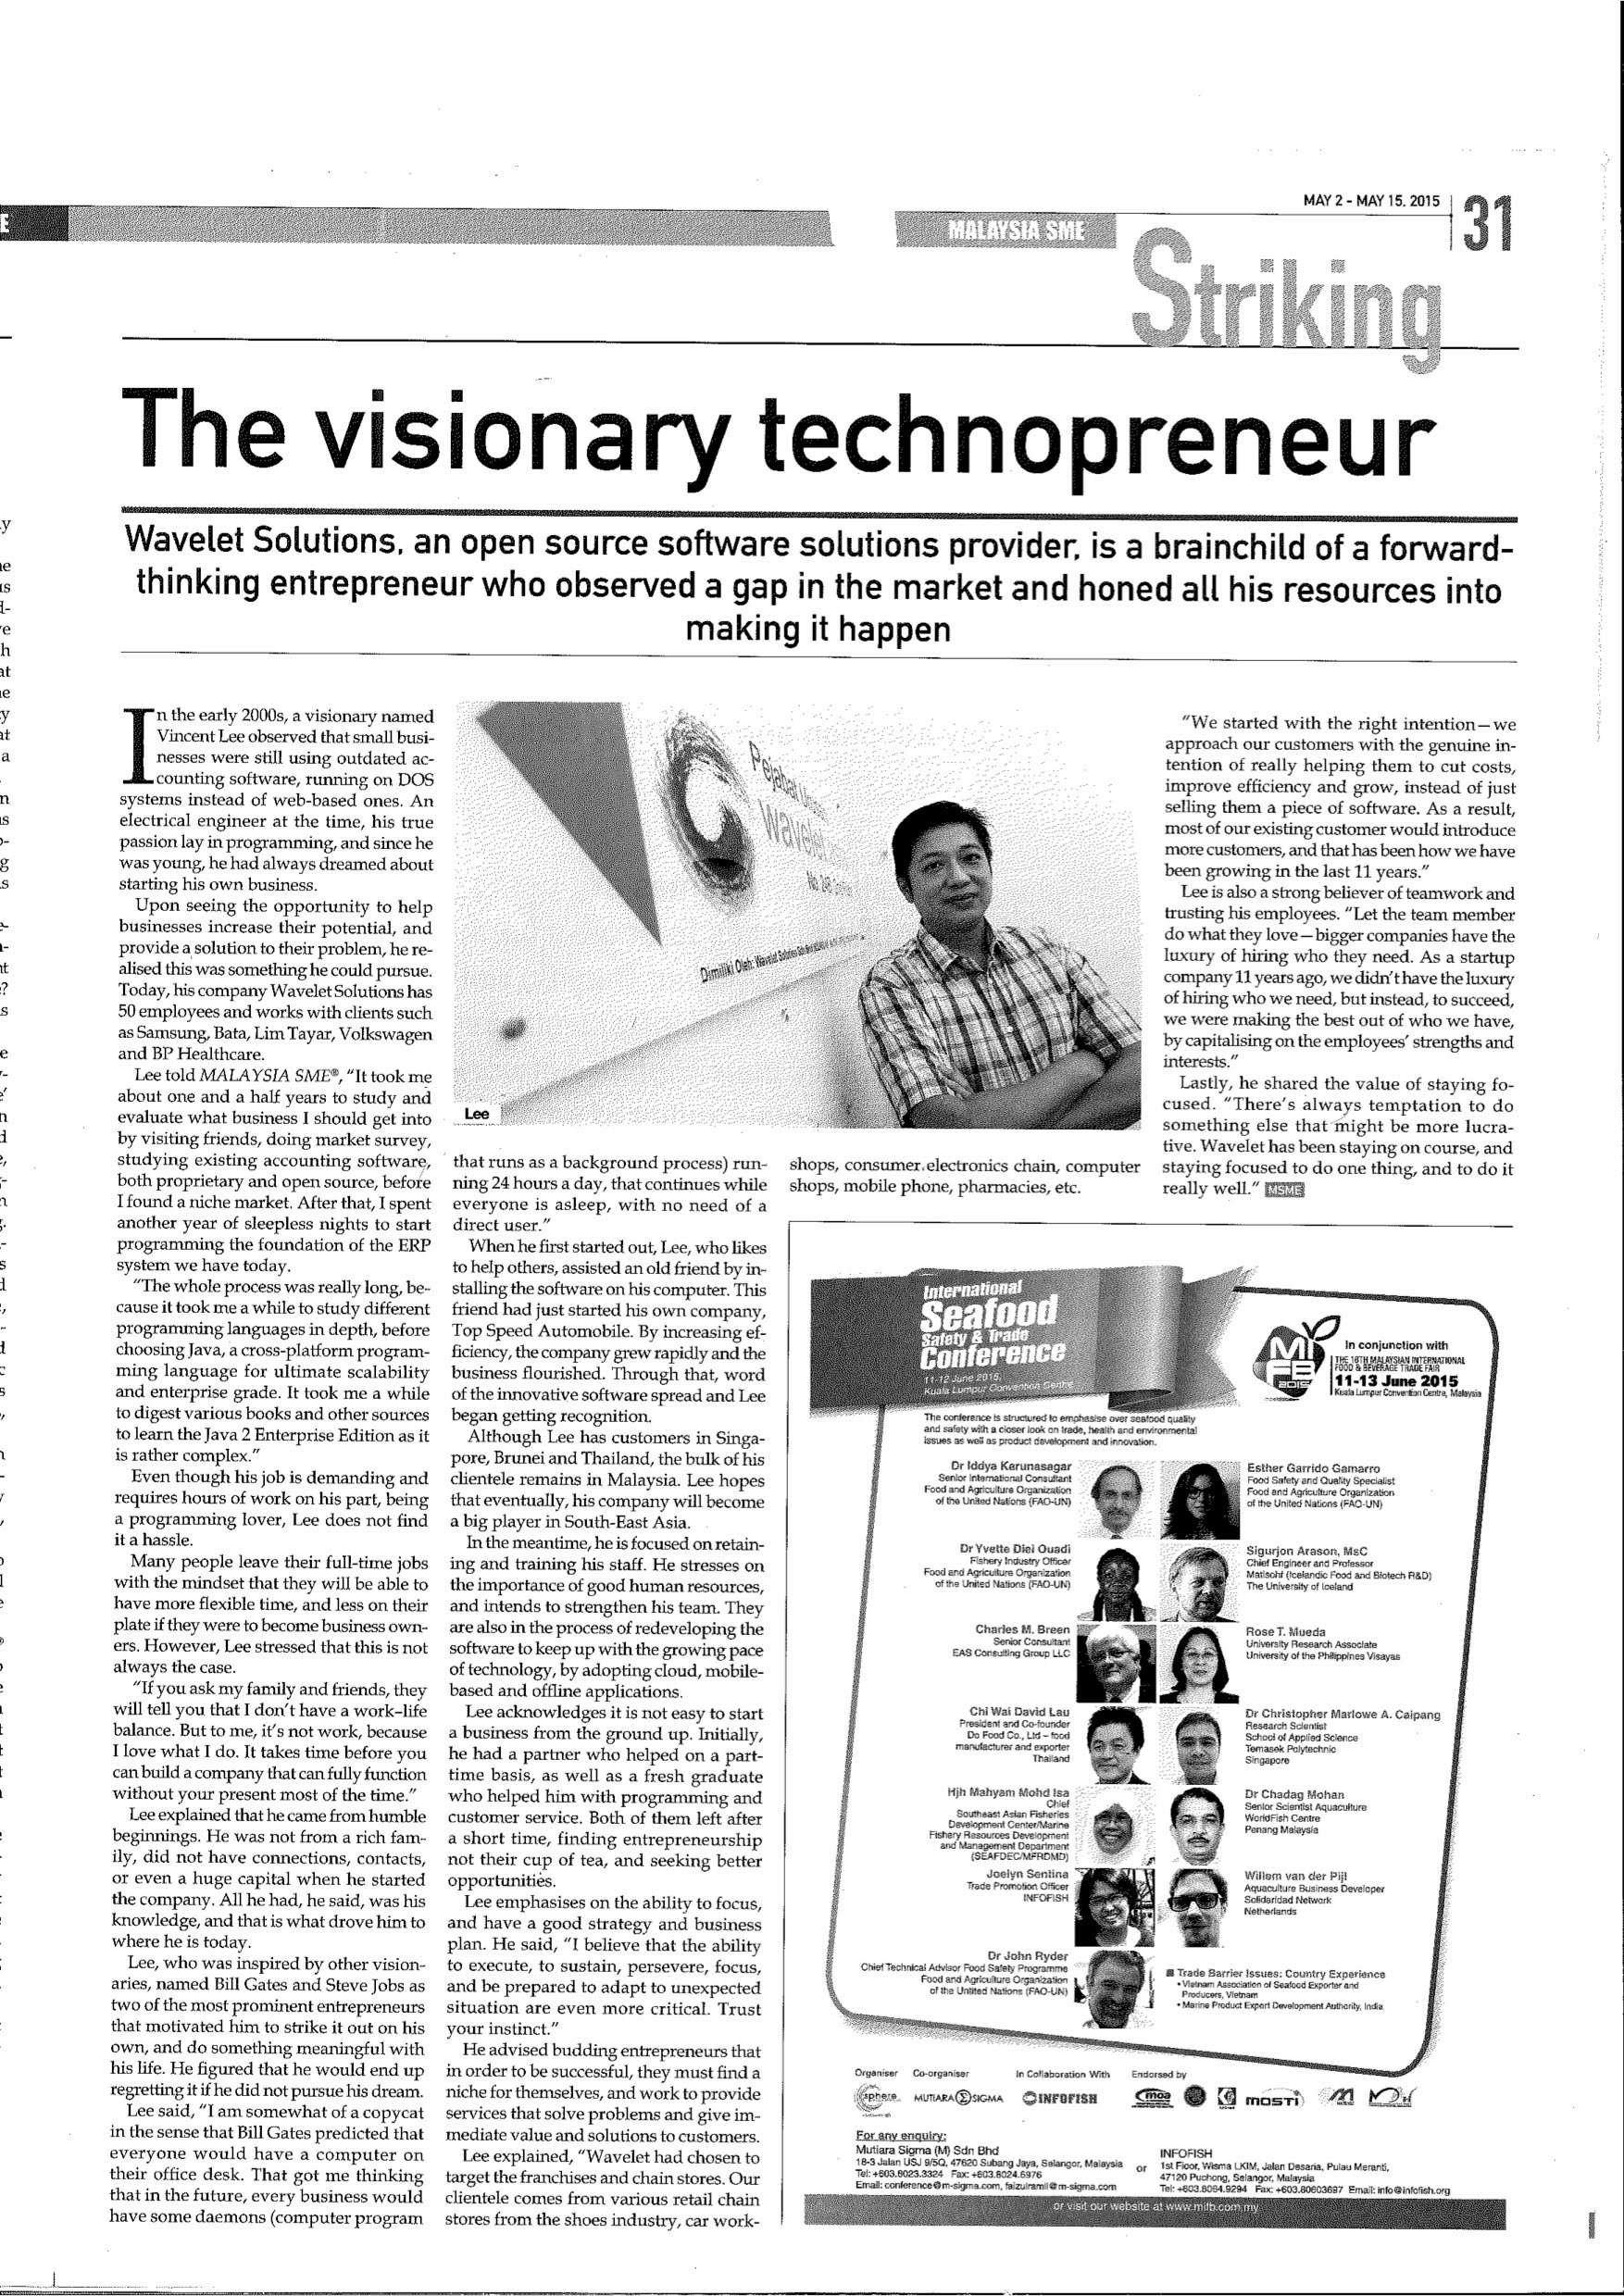 SME Magazine reporting on Vincent Lee